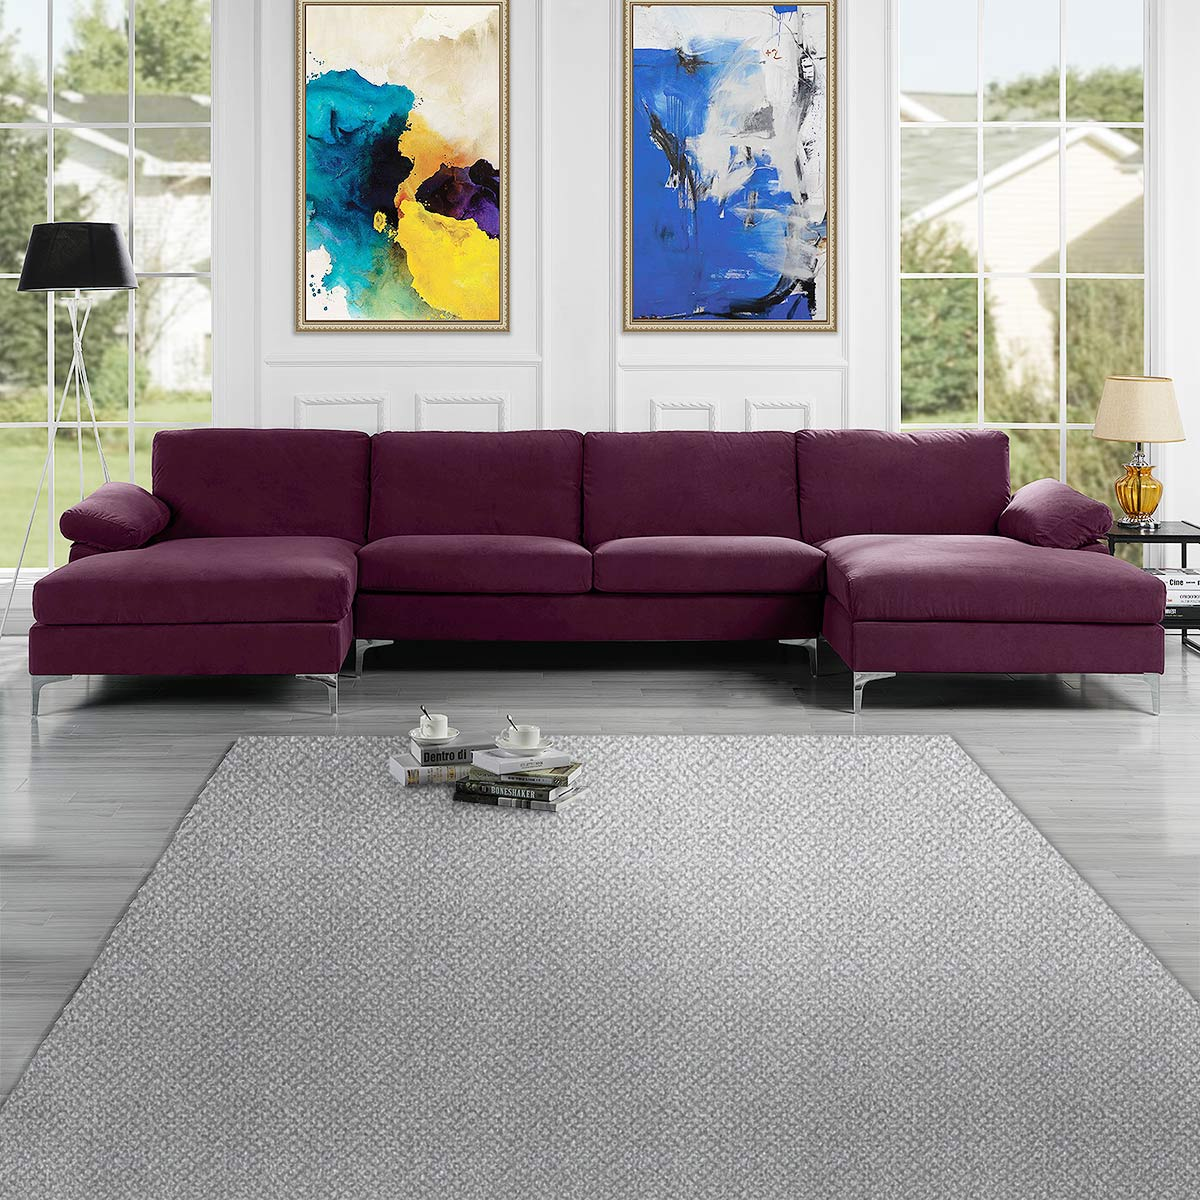 mobilis modern large microfiber velvet fabric u shape sectional sofa with double extra wide chaise lounge purple